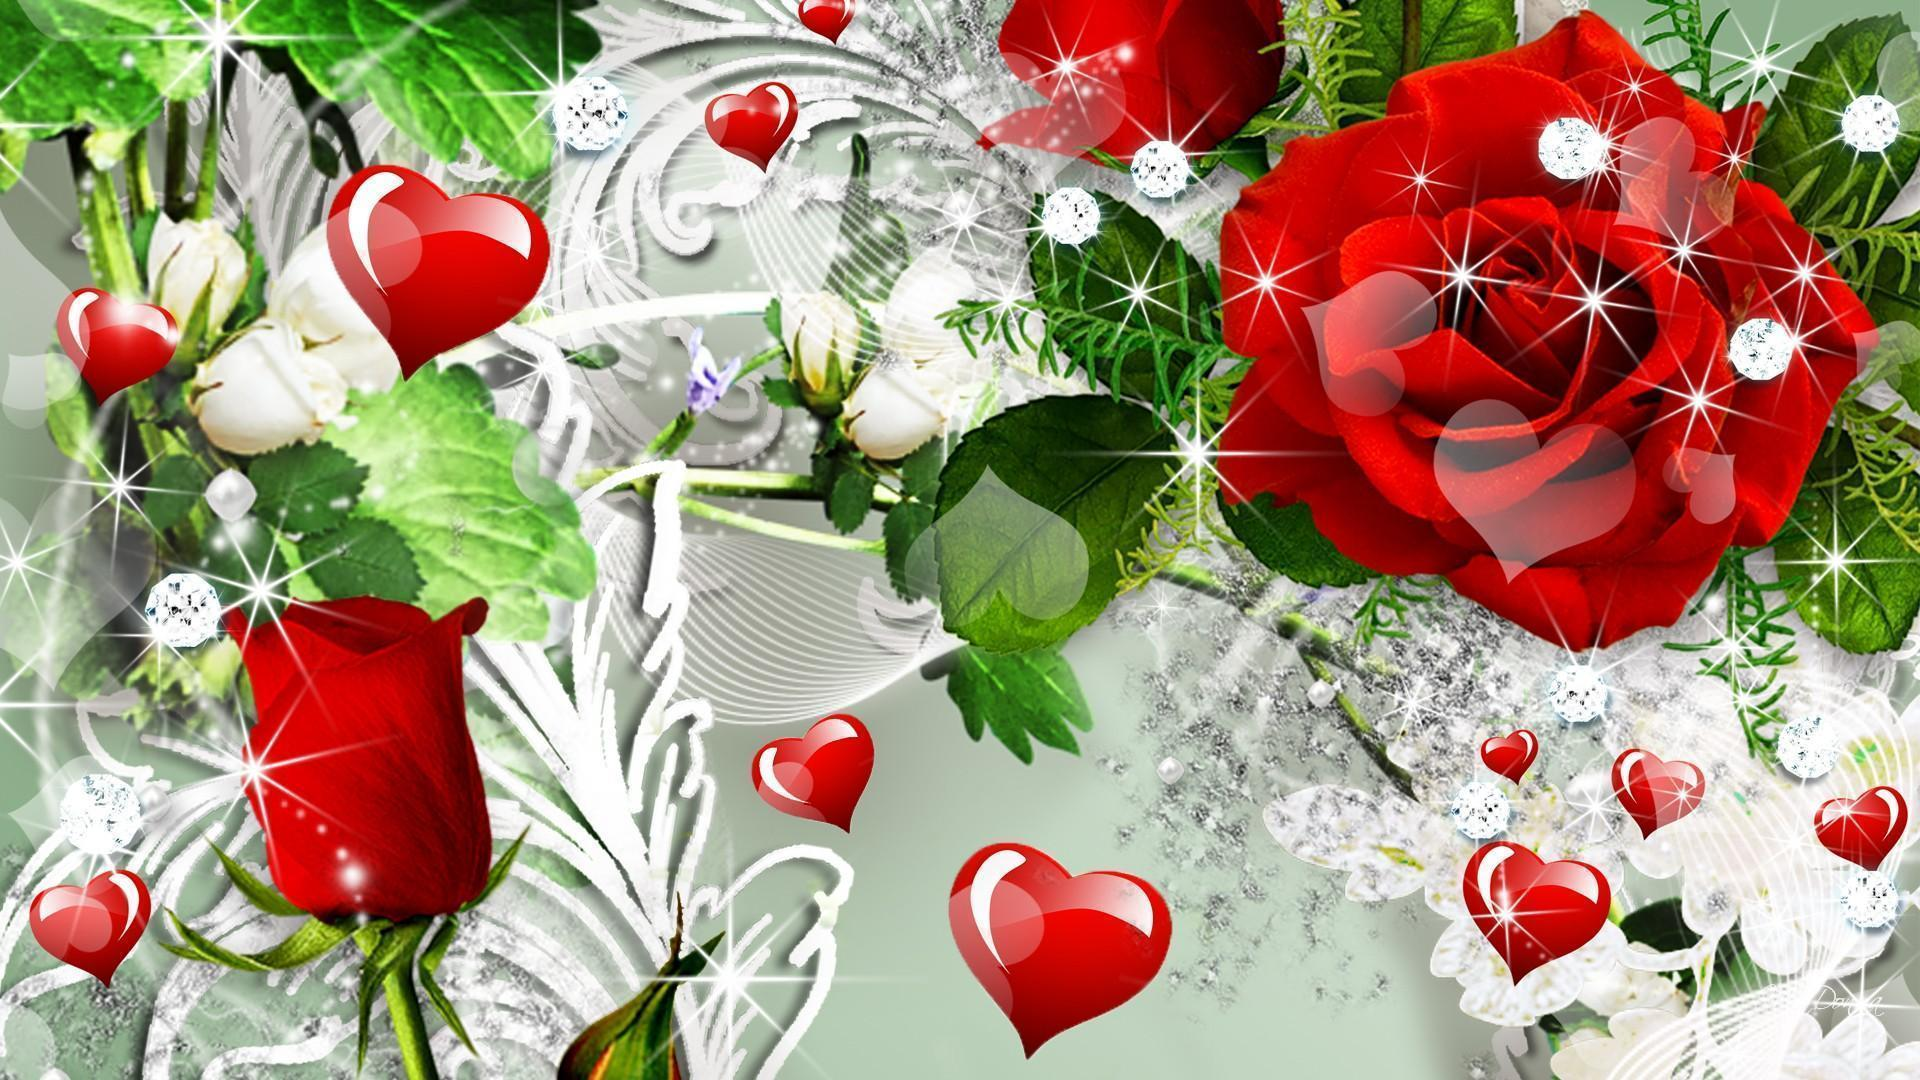 Red rose heart wallpapers wallpaper cave - Pics of roses and hearts ...